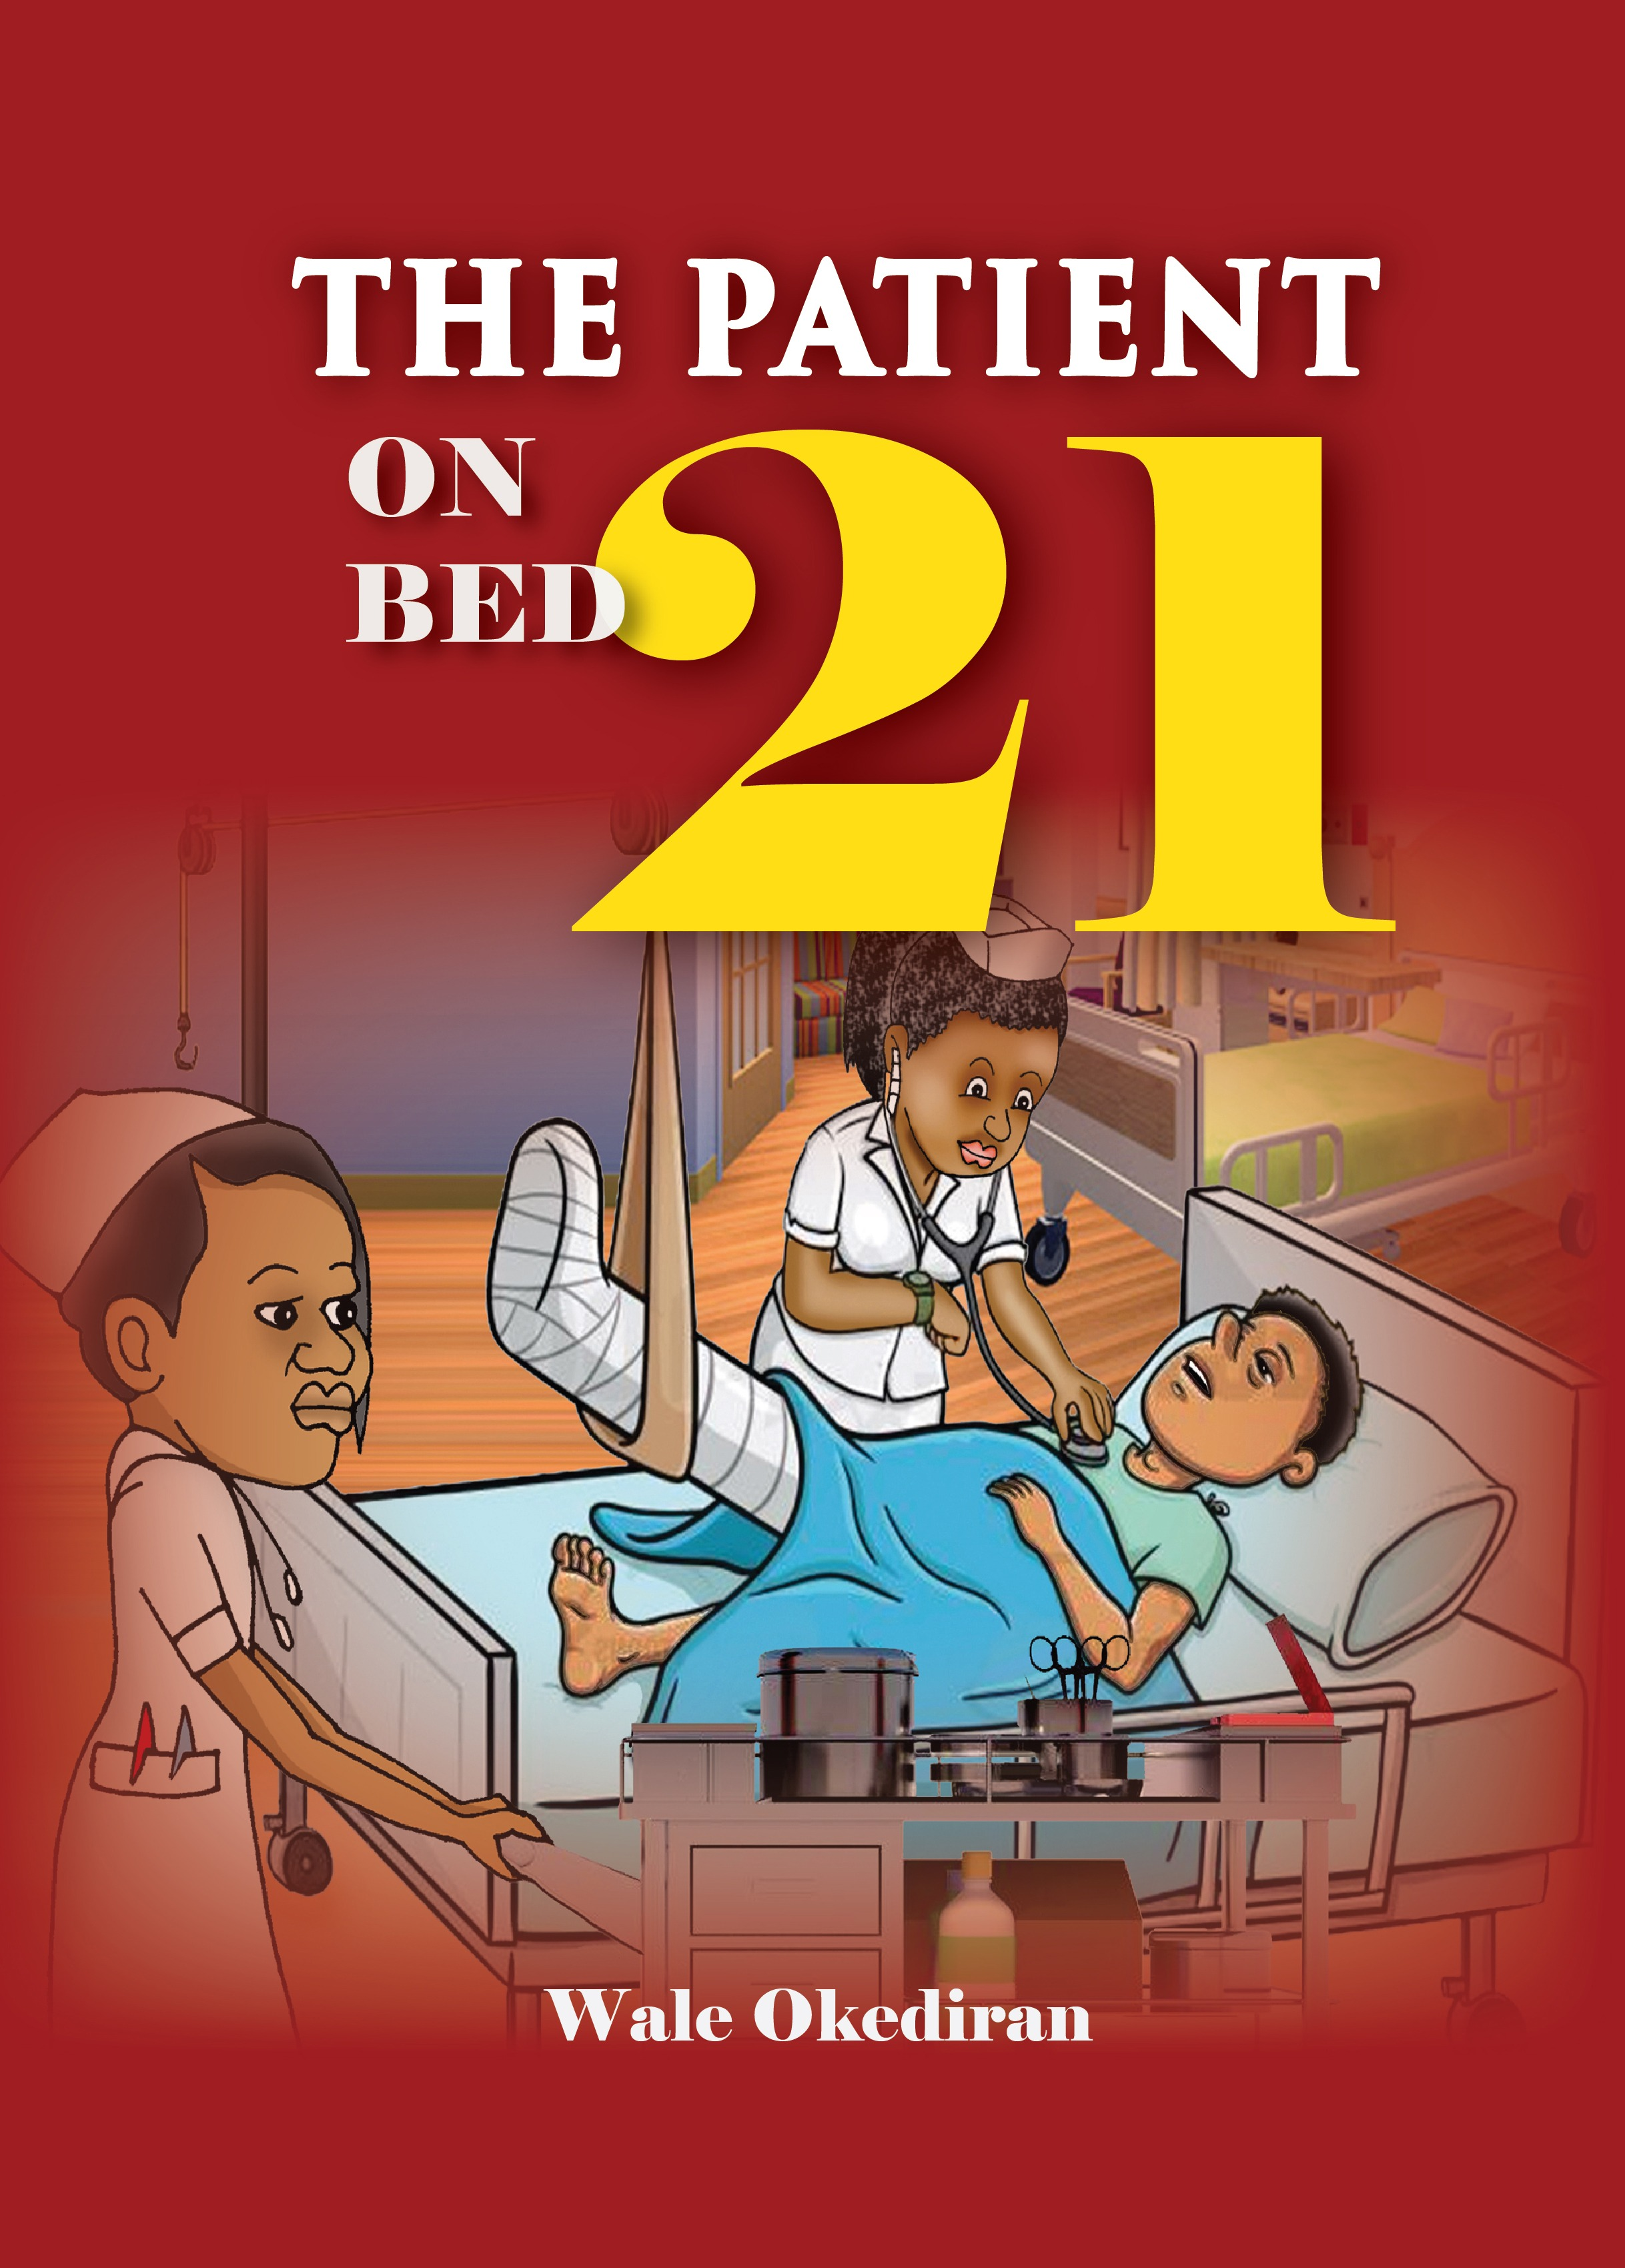 The Patient On Bed 21